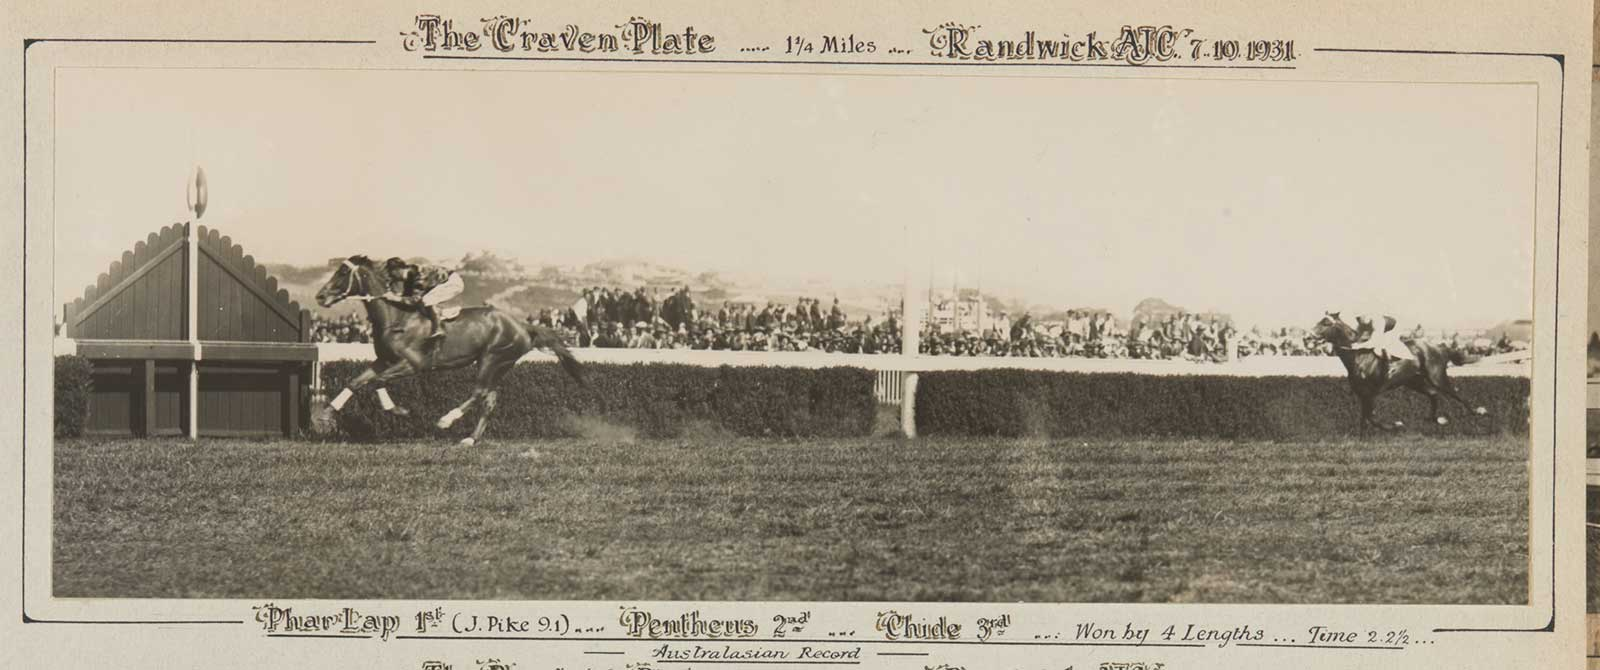 A black and white photo of Phar Lap winning the Craven Plate, 1931. - click to view larger image